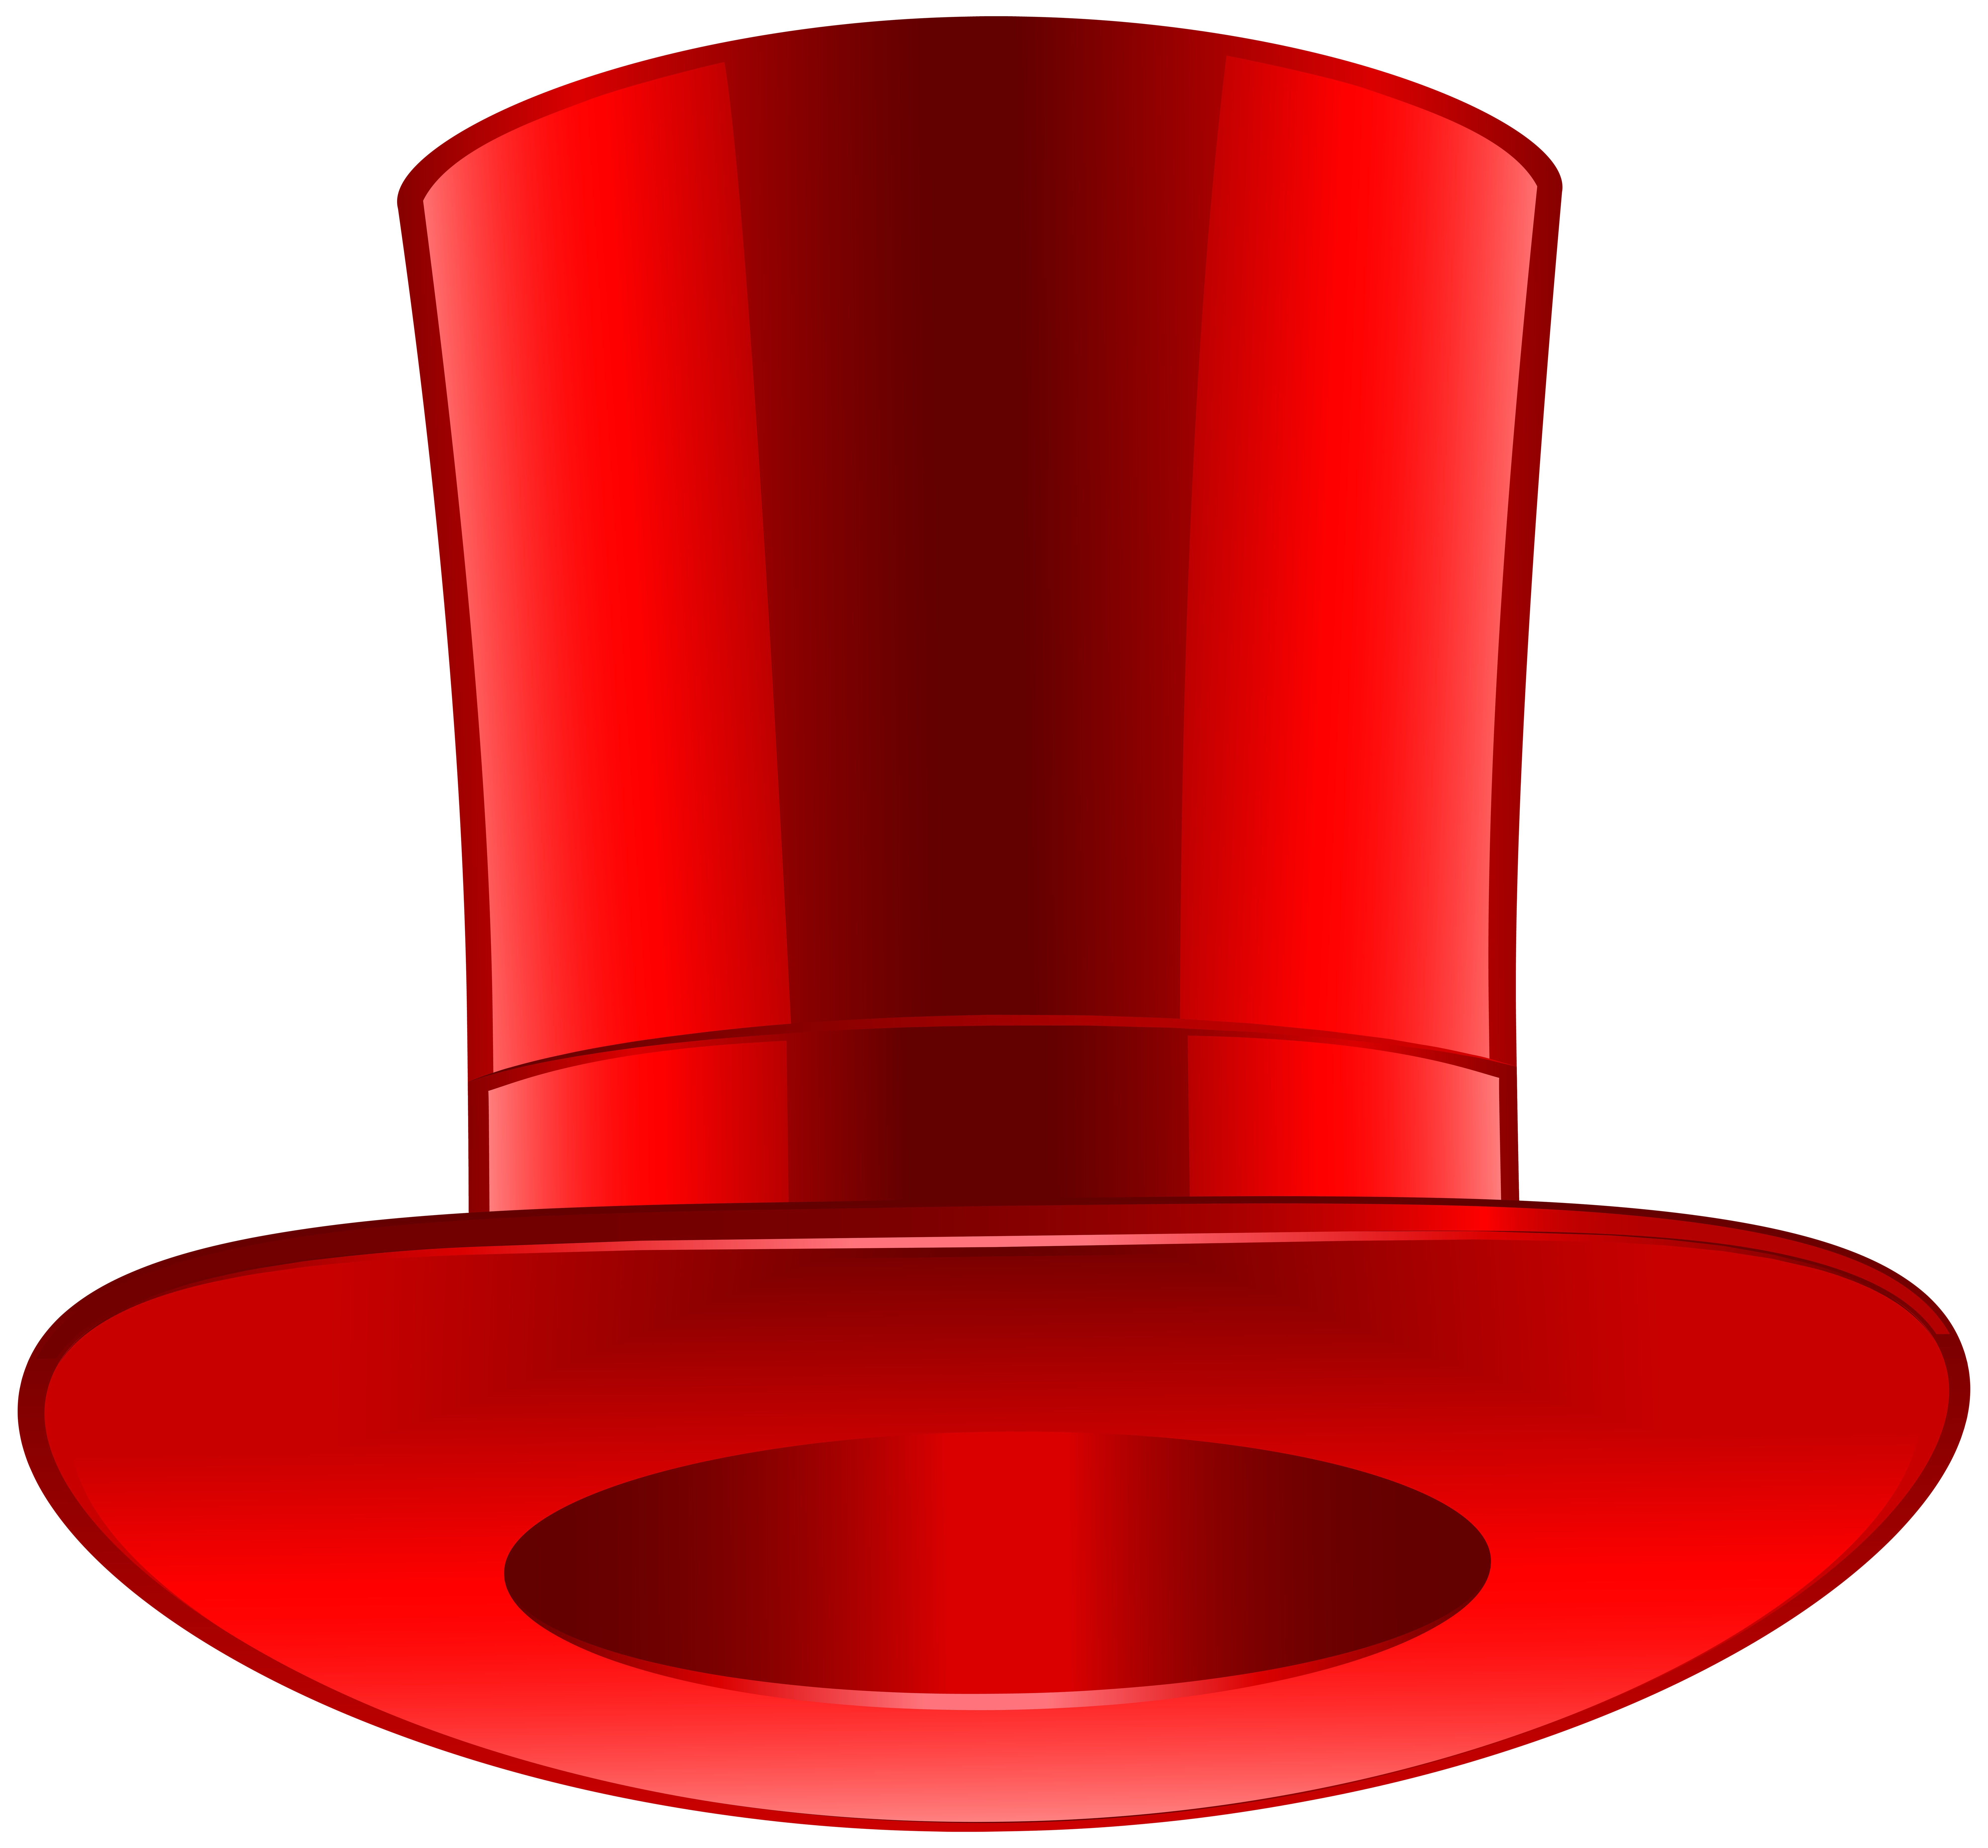 1206 Top Hat free clipart.